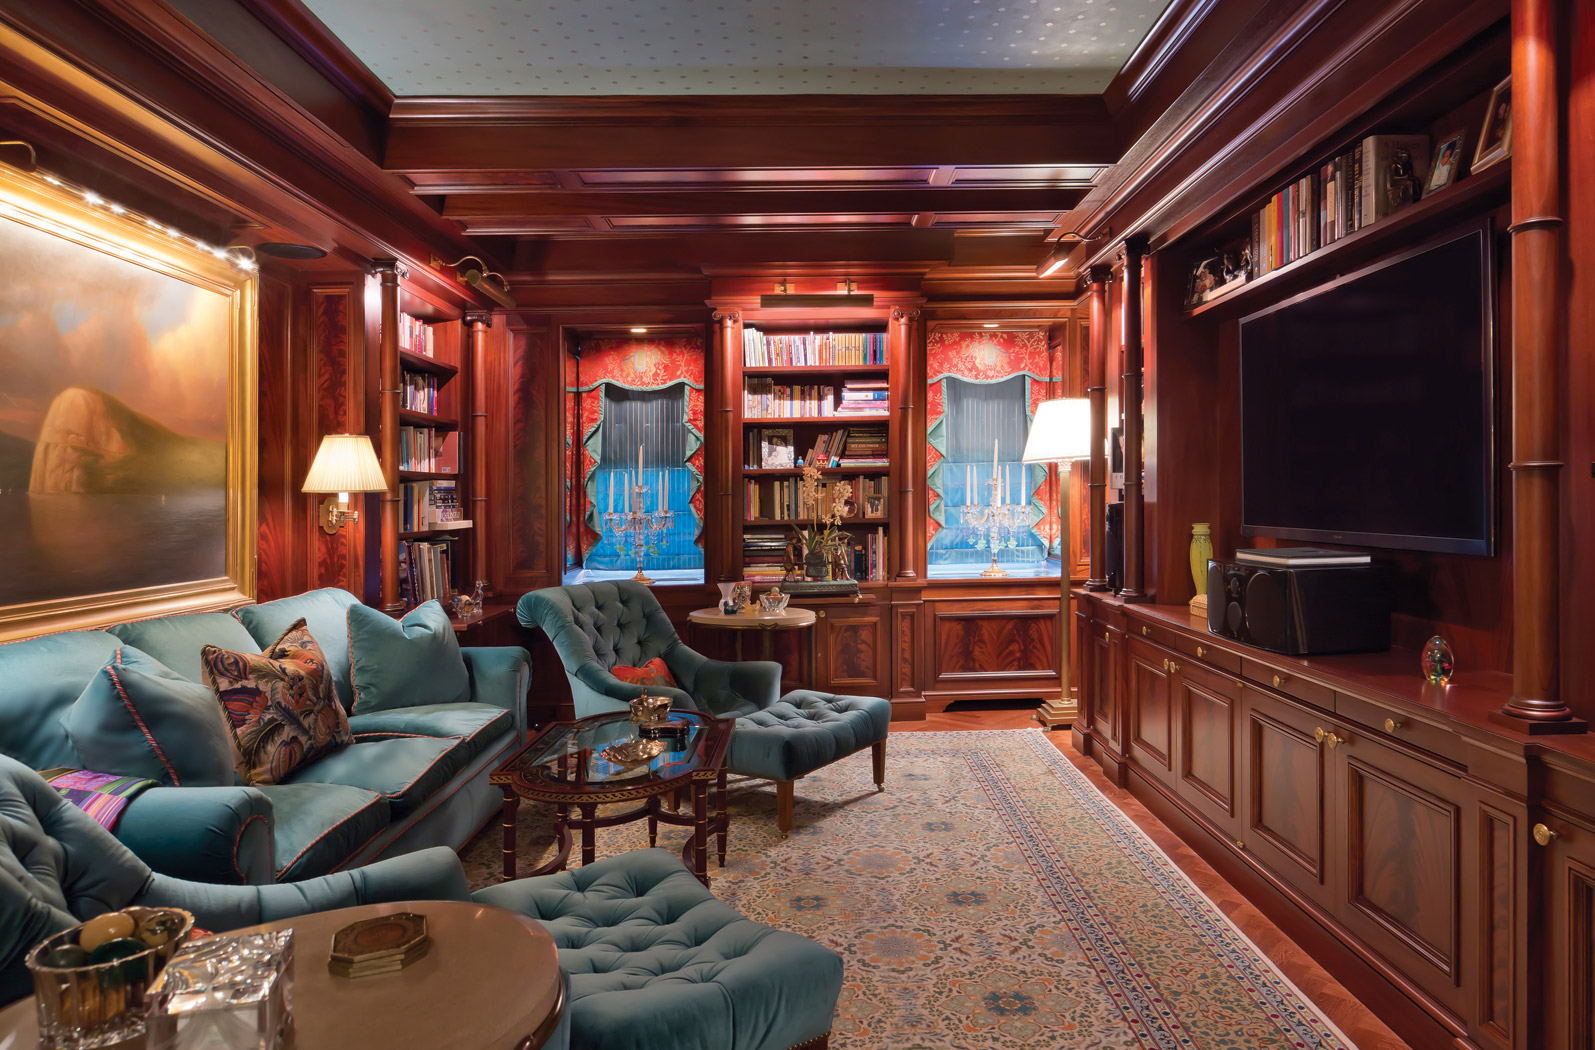 New York City high-end custom architectural millwork firm